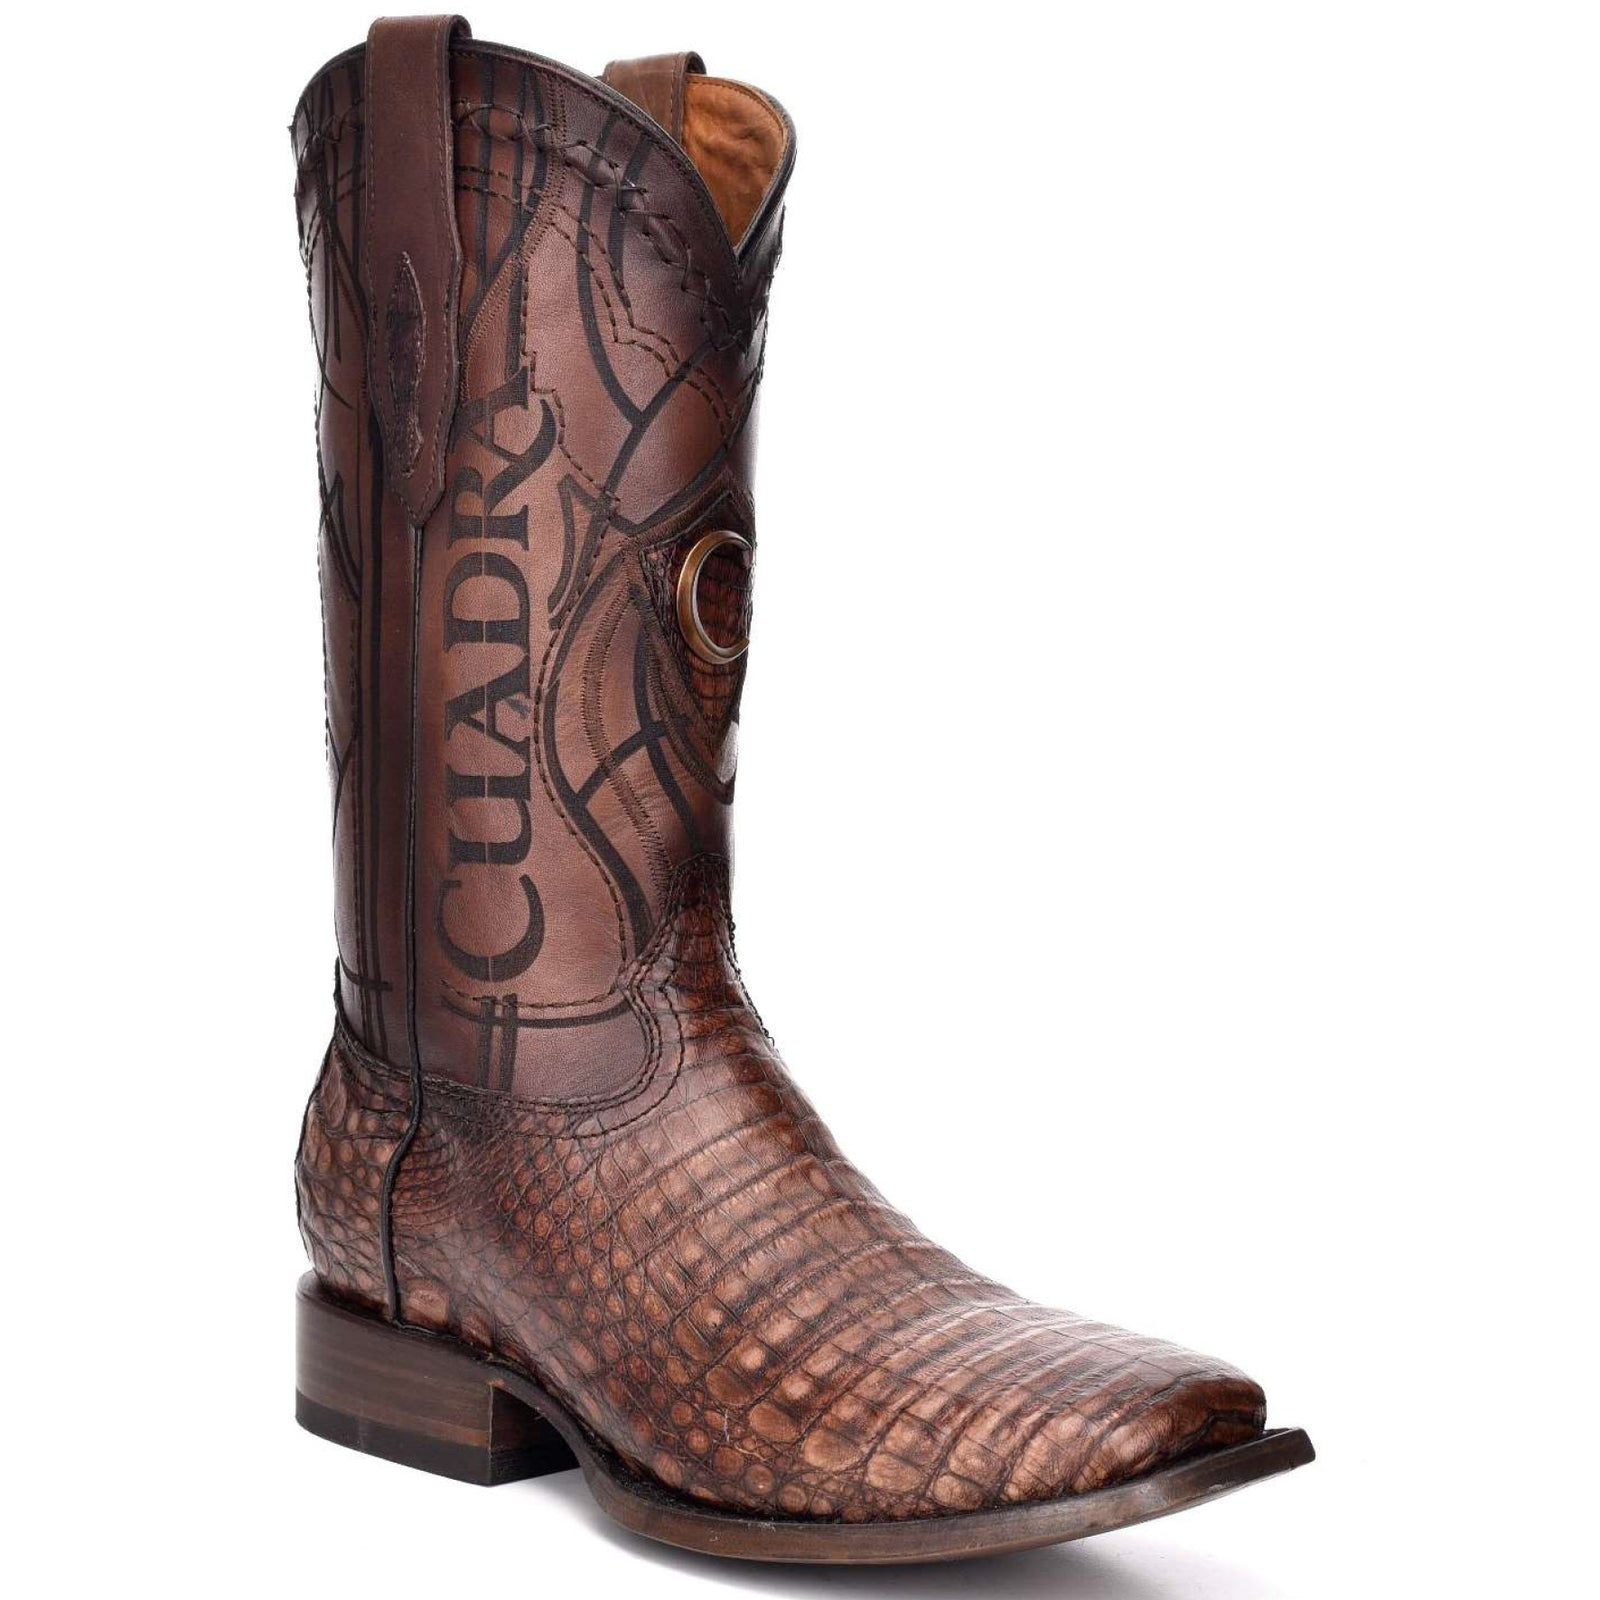 Cuadra Men's Square Toe Caiman Belly Lumber Whisky Cowboy Boots